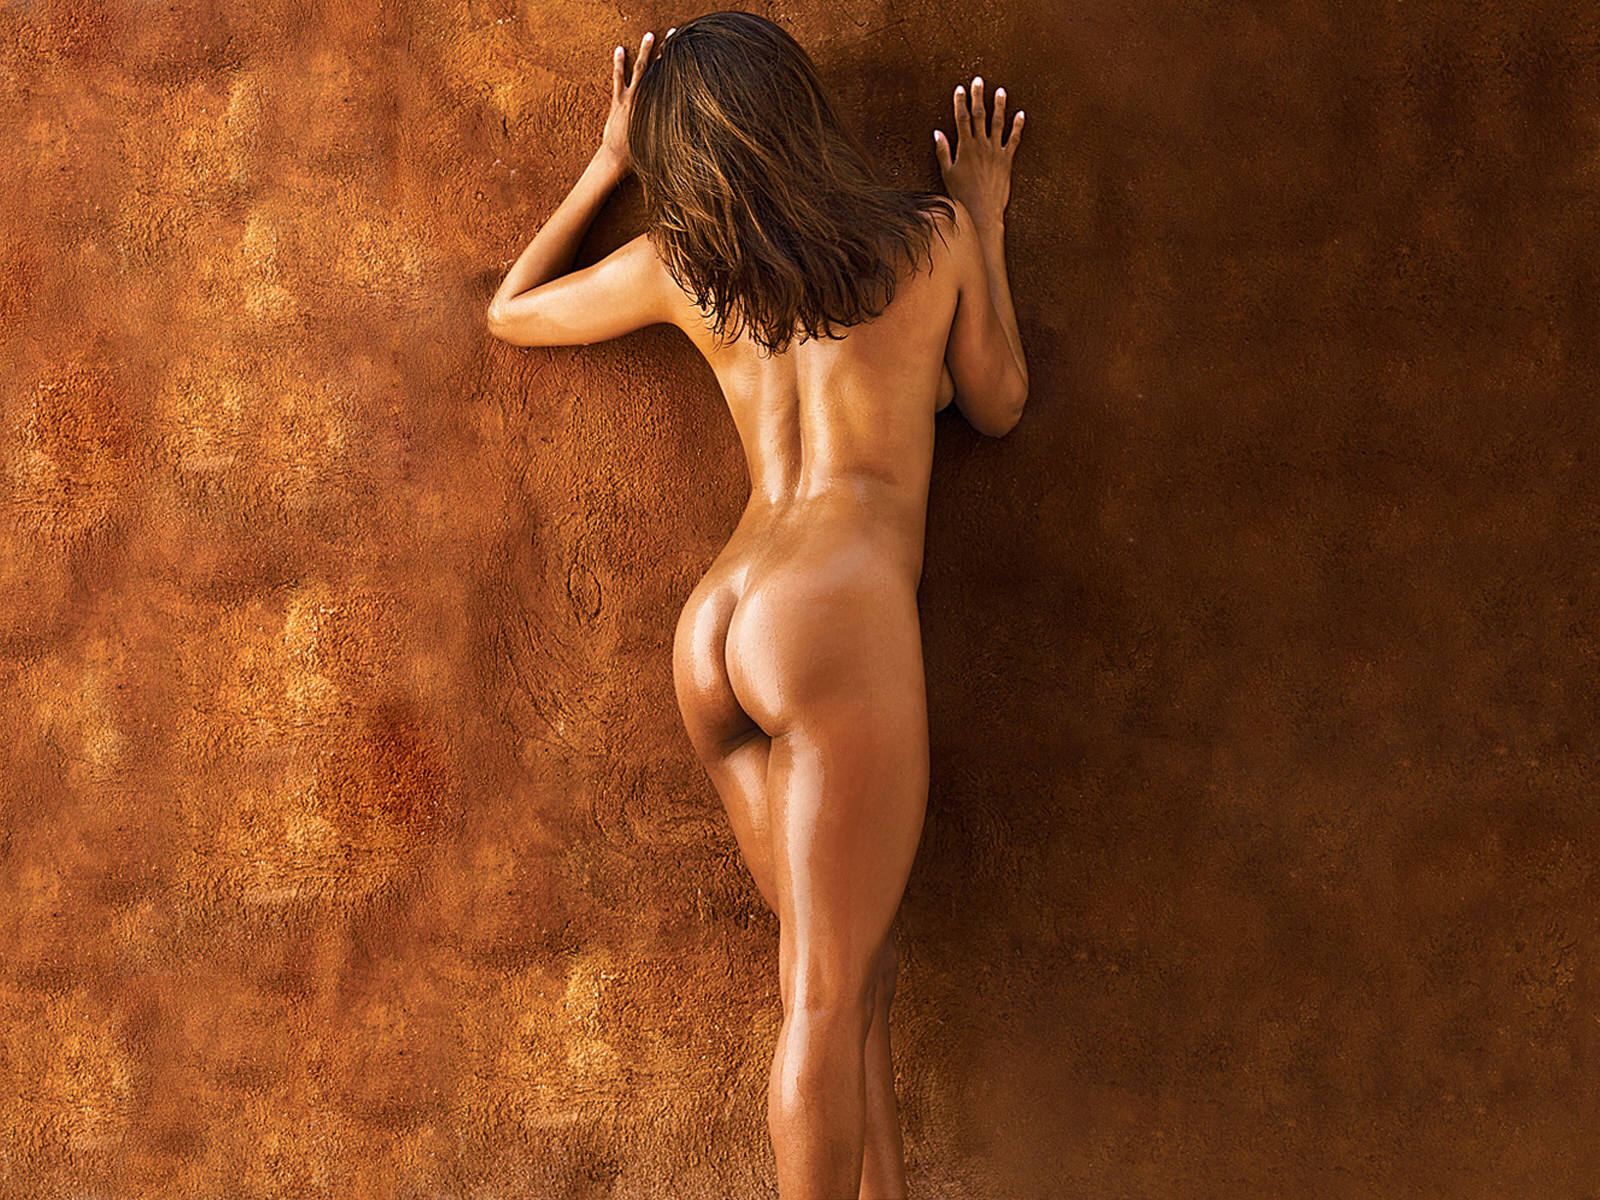 http://zone.wallpaper.free.fr/galleries/Celebrites_Femmes/P_-_T/Stacey_Dash/Stacey_Dash_02_1600x1200.jpg